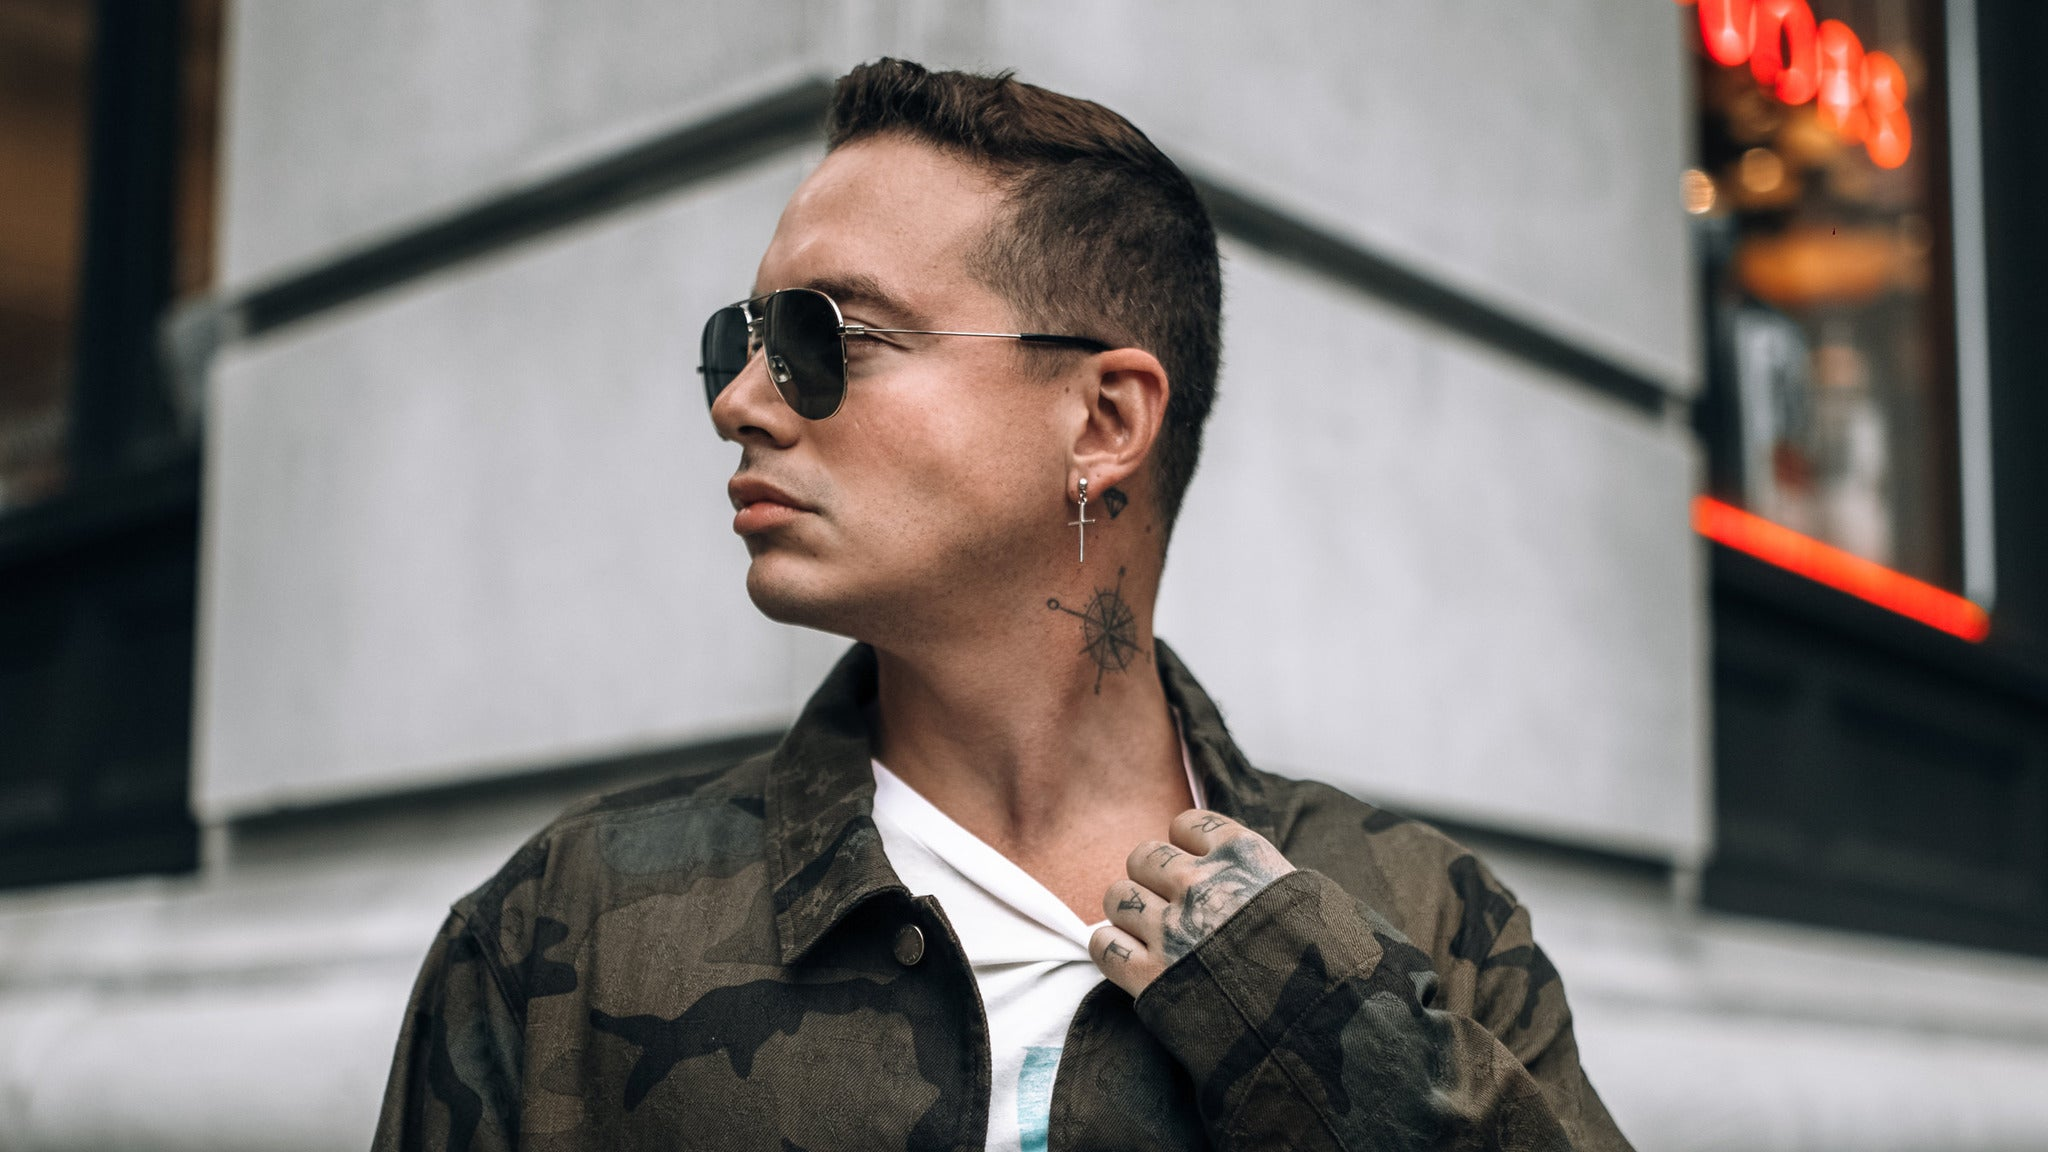 J Balvin Vibras Tour at Comerica Theatre